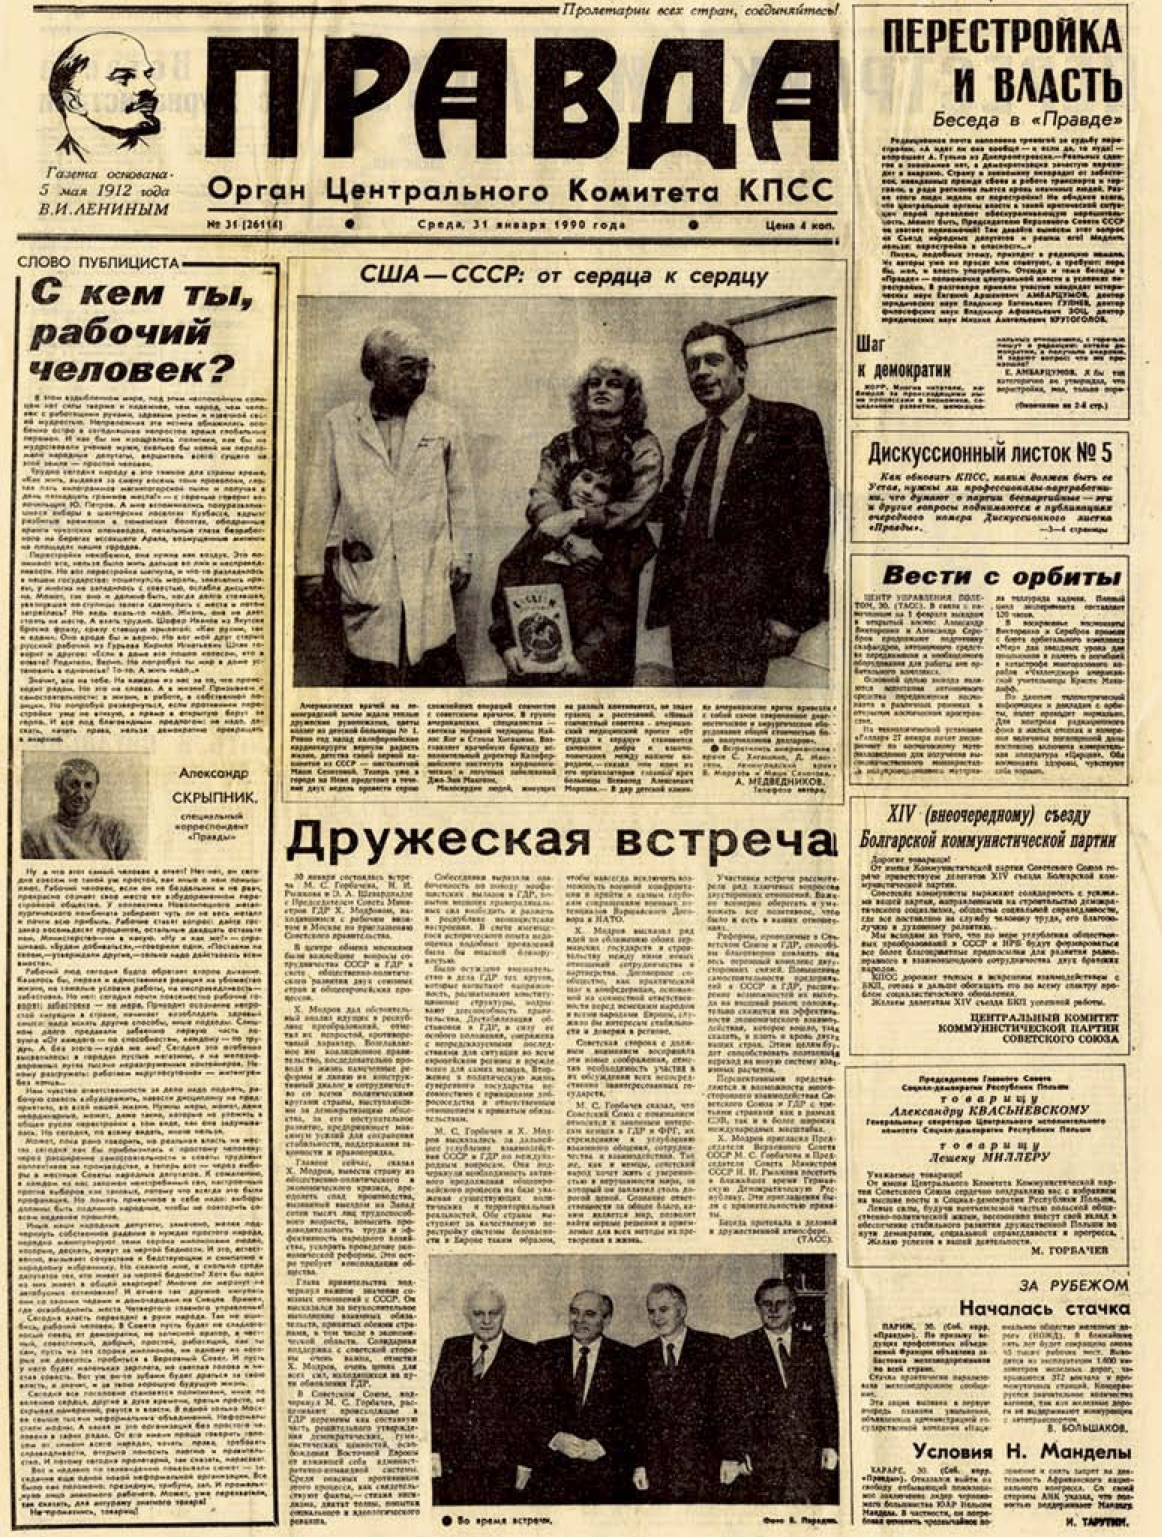 Saint Petersburg 1990, USA-USSR From Heart to Heart  (Dr. Higashino, JoAnn McGowan & Masha Senotova), Pravda 1.31.1990 Low Resolution, Russian.jpg